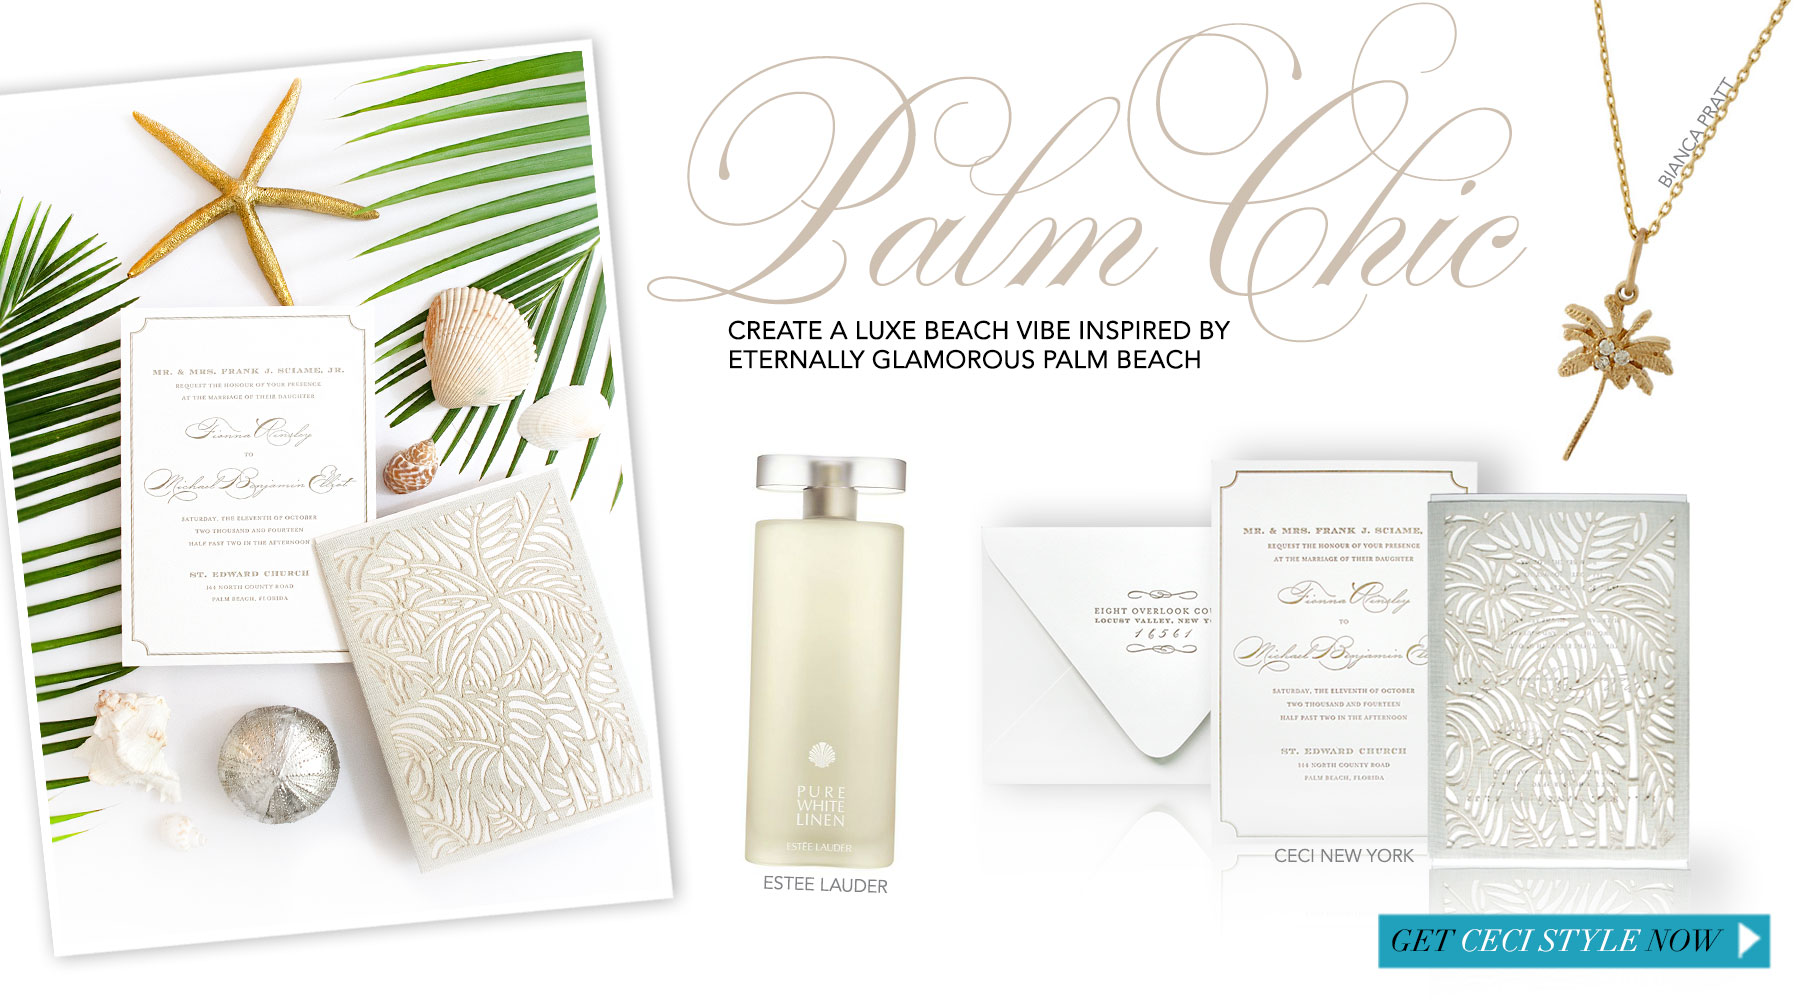 Palm Chic - Create a luxe beach vibe inspired by eternally glamorous Palm Beach